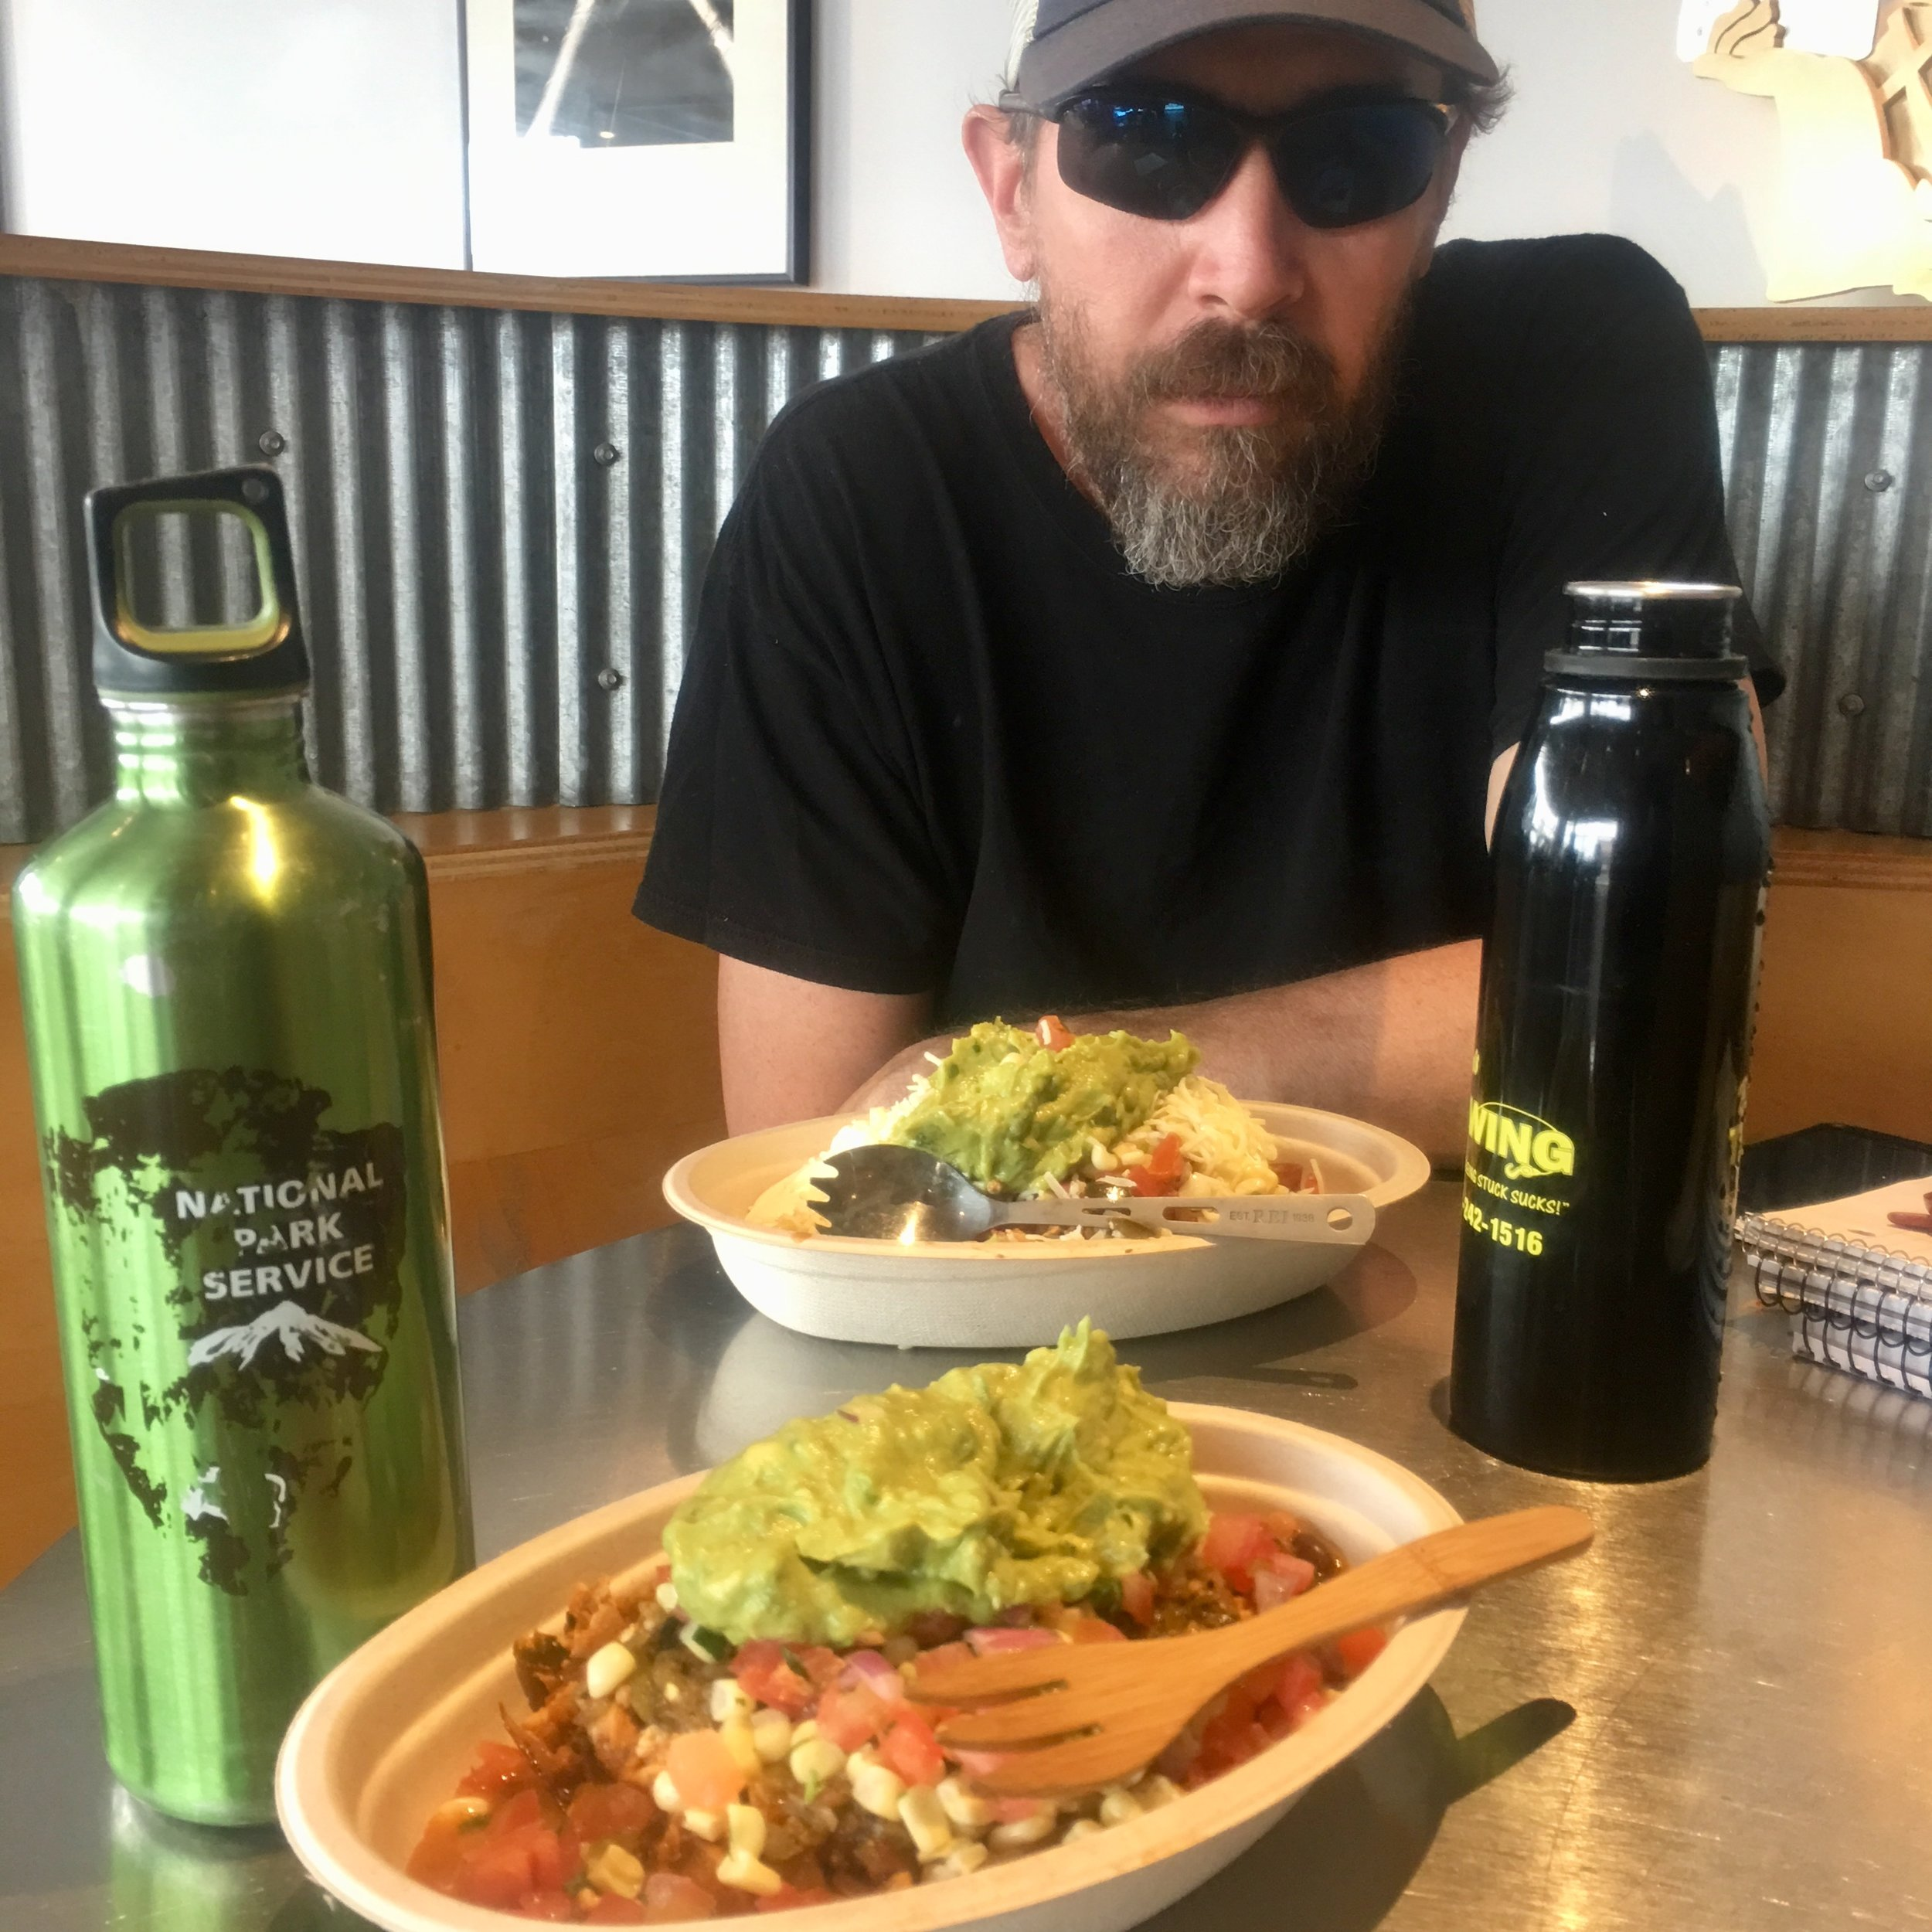 Adam at lunch today with my bamboo To-Go Ware fork, his titanium REI spork, our yummy Chipotle Sofritas bowls (mine is vegan, his is veggie),and our respective water bottles.